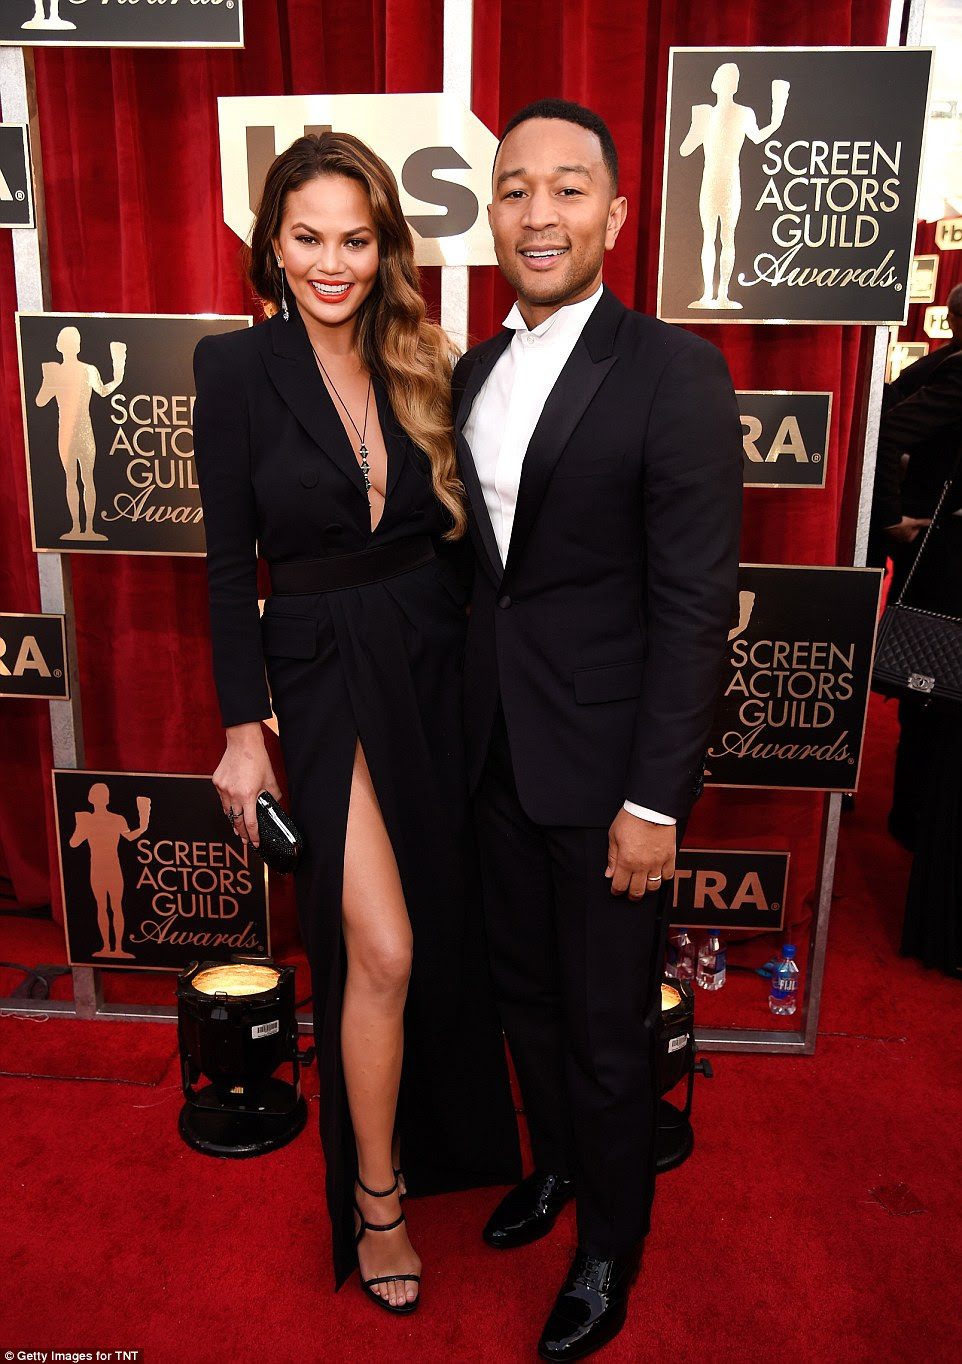 Star couple: A estrela do Sports Illustrated foi acompanhada pelo marido John Legend, vencedor do Grammy